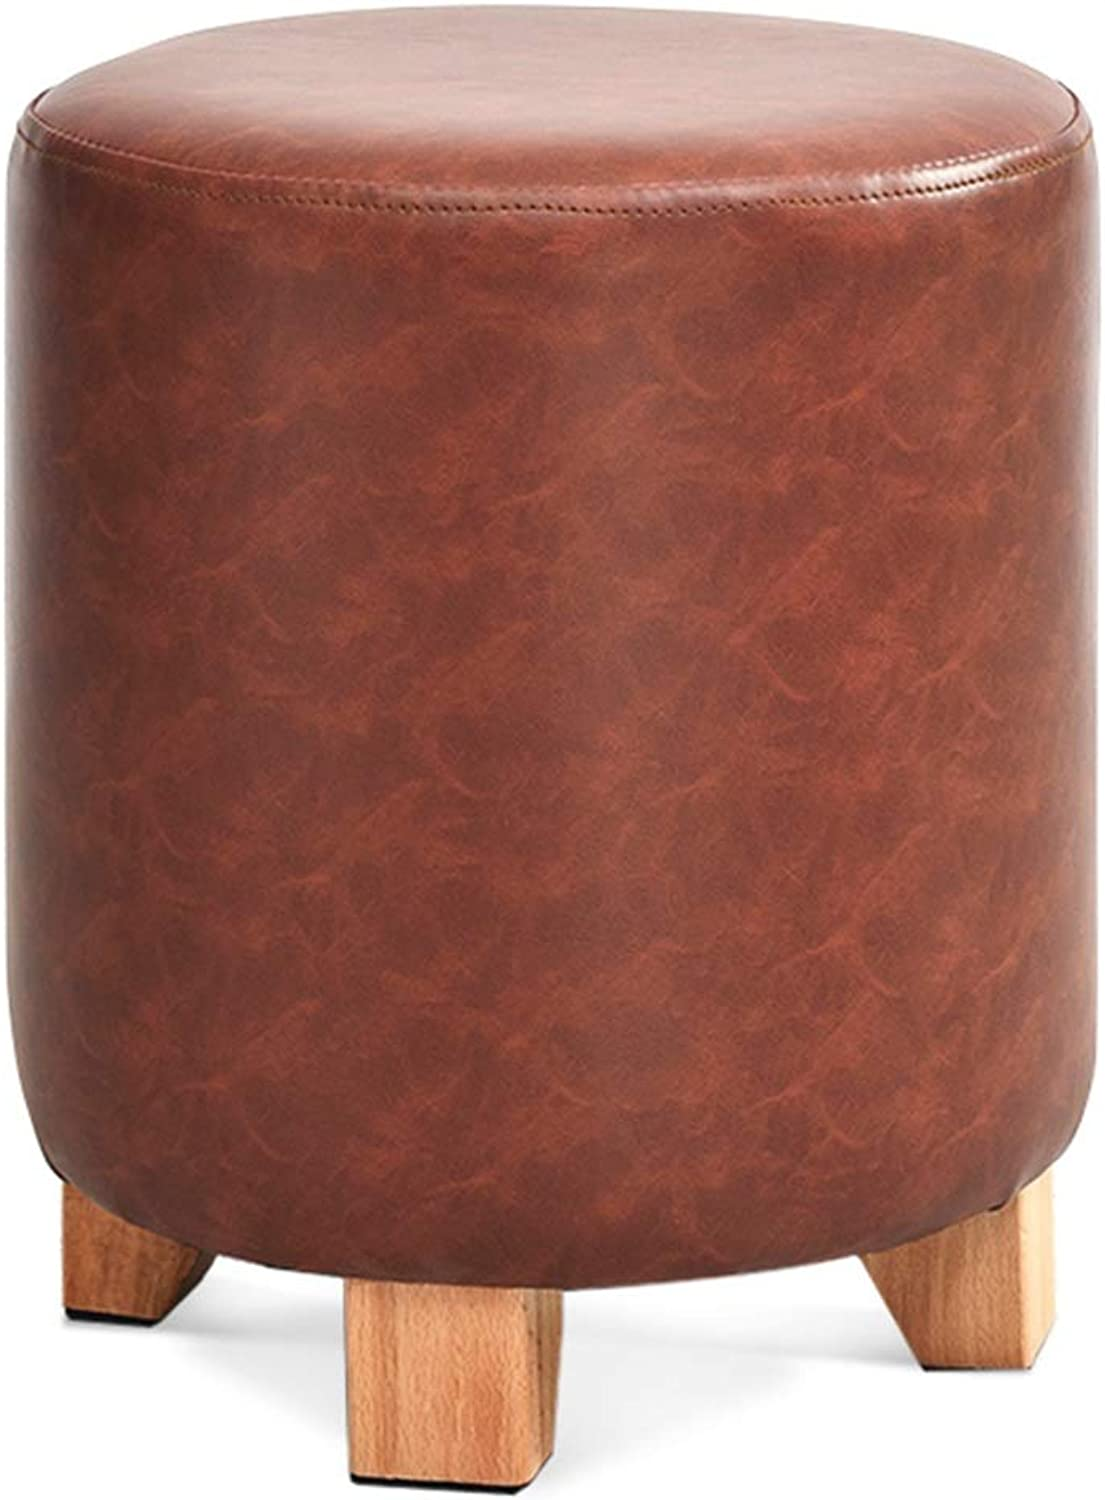 Pouffes and Footstools Home Cylindrical State Seat Low Stool Comfortable Soft PU Solid Wood, 3 colors ( color   Brown , Size   29x29x35cm )